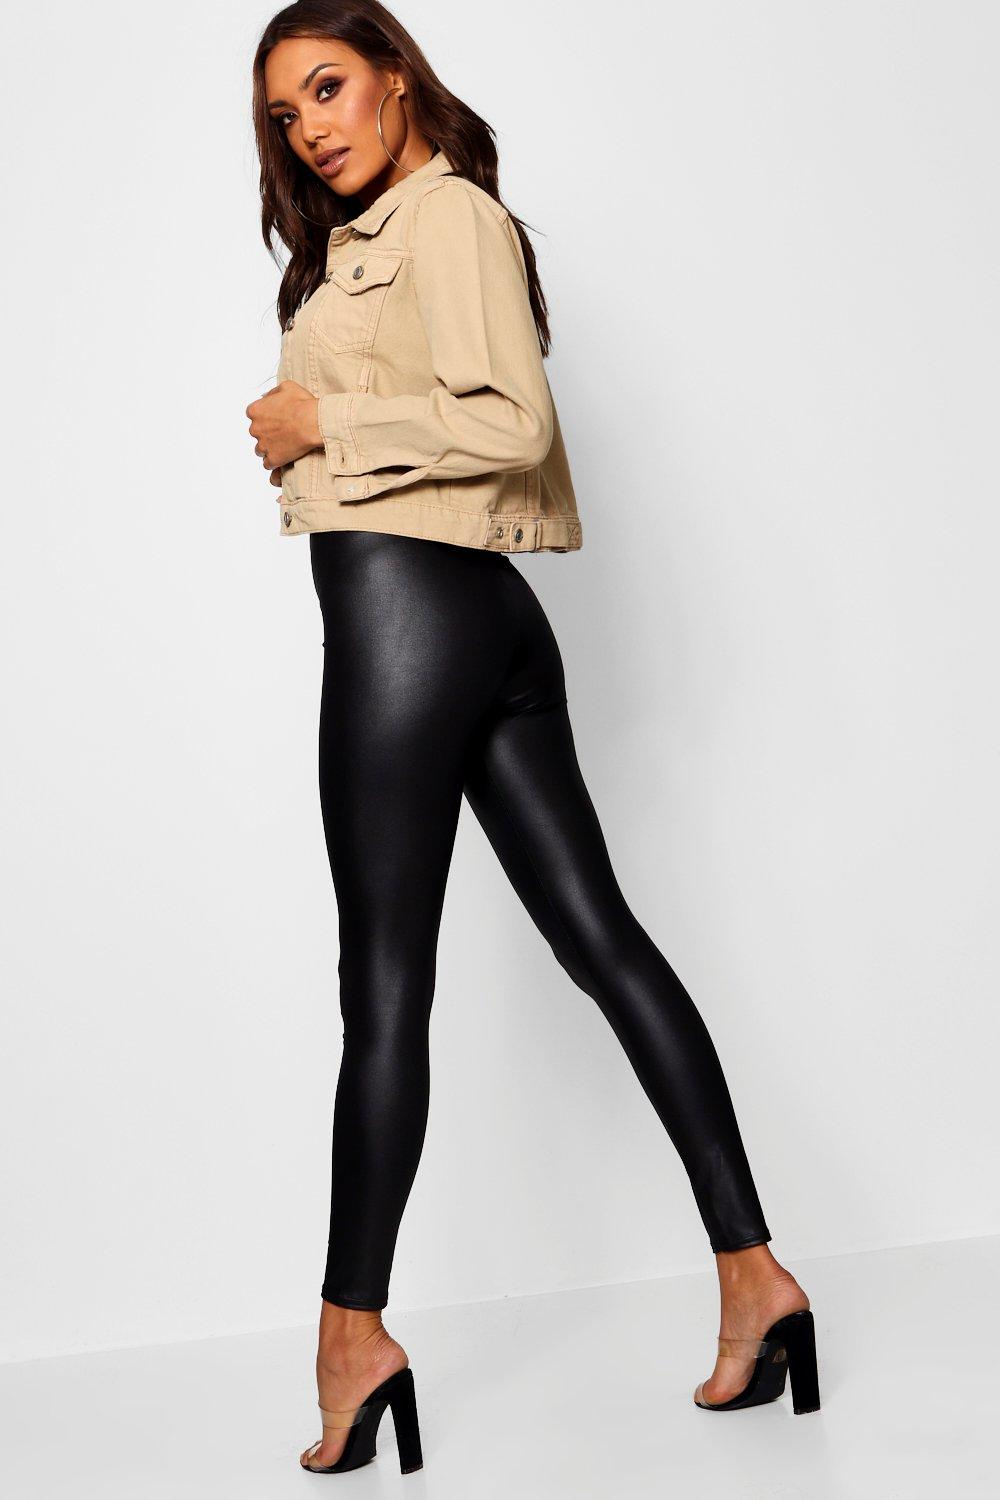 Cathy Wet Look Stretch Datex Leggings - Woven Trends